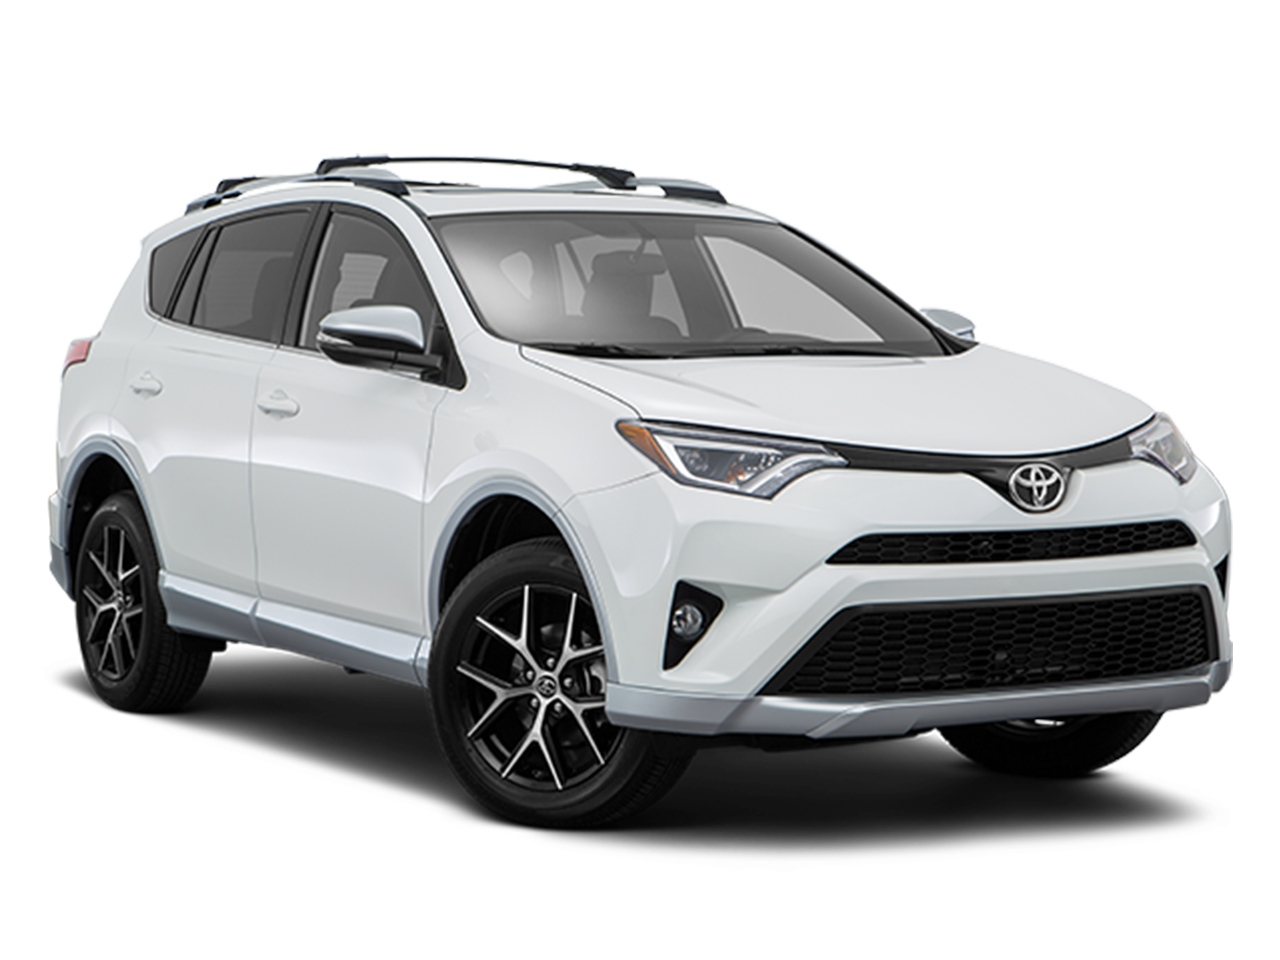 compare the 2016 toyota rav4 vs 2016 chevrolet trax romano toyota. Black Bedroom Furniture Sets. Home Design Ideas